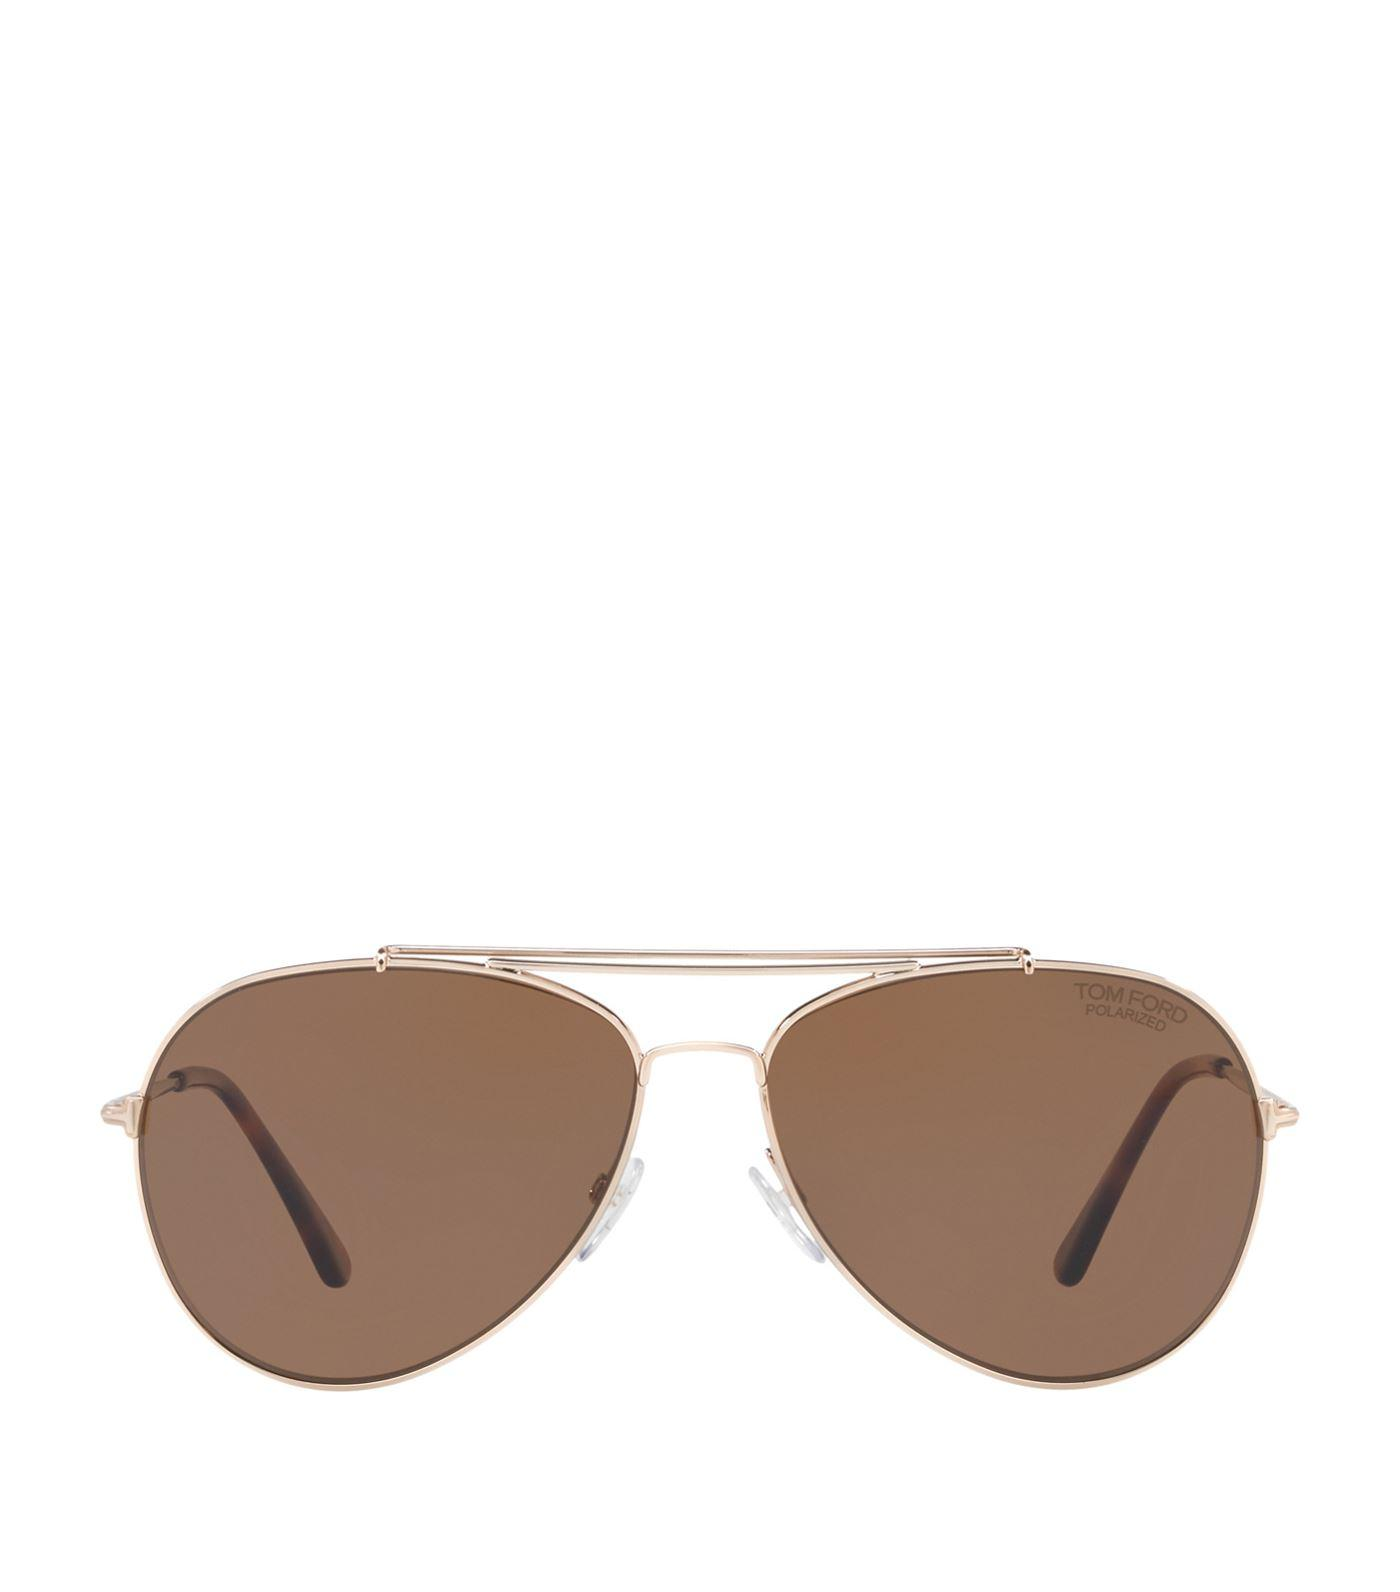 cb61da06d99 Tom Ford Indiana 58Mm Polarized Aviator Sunglasses - Brown  Blonde  Rose  Gold